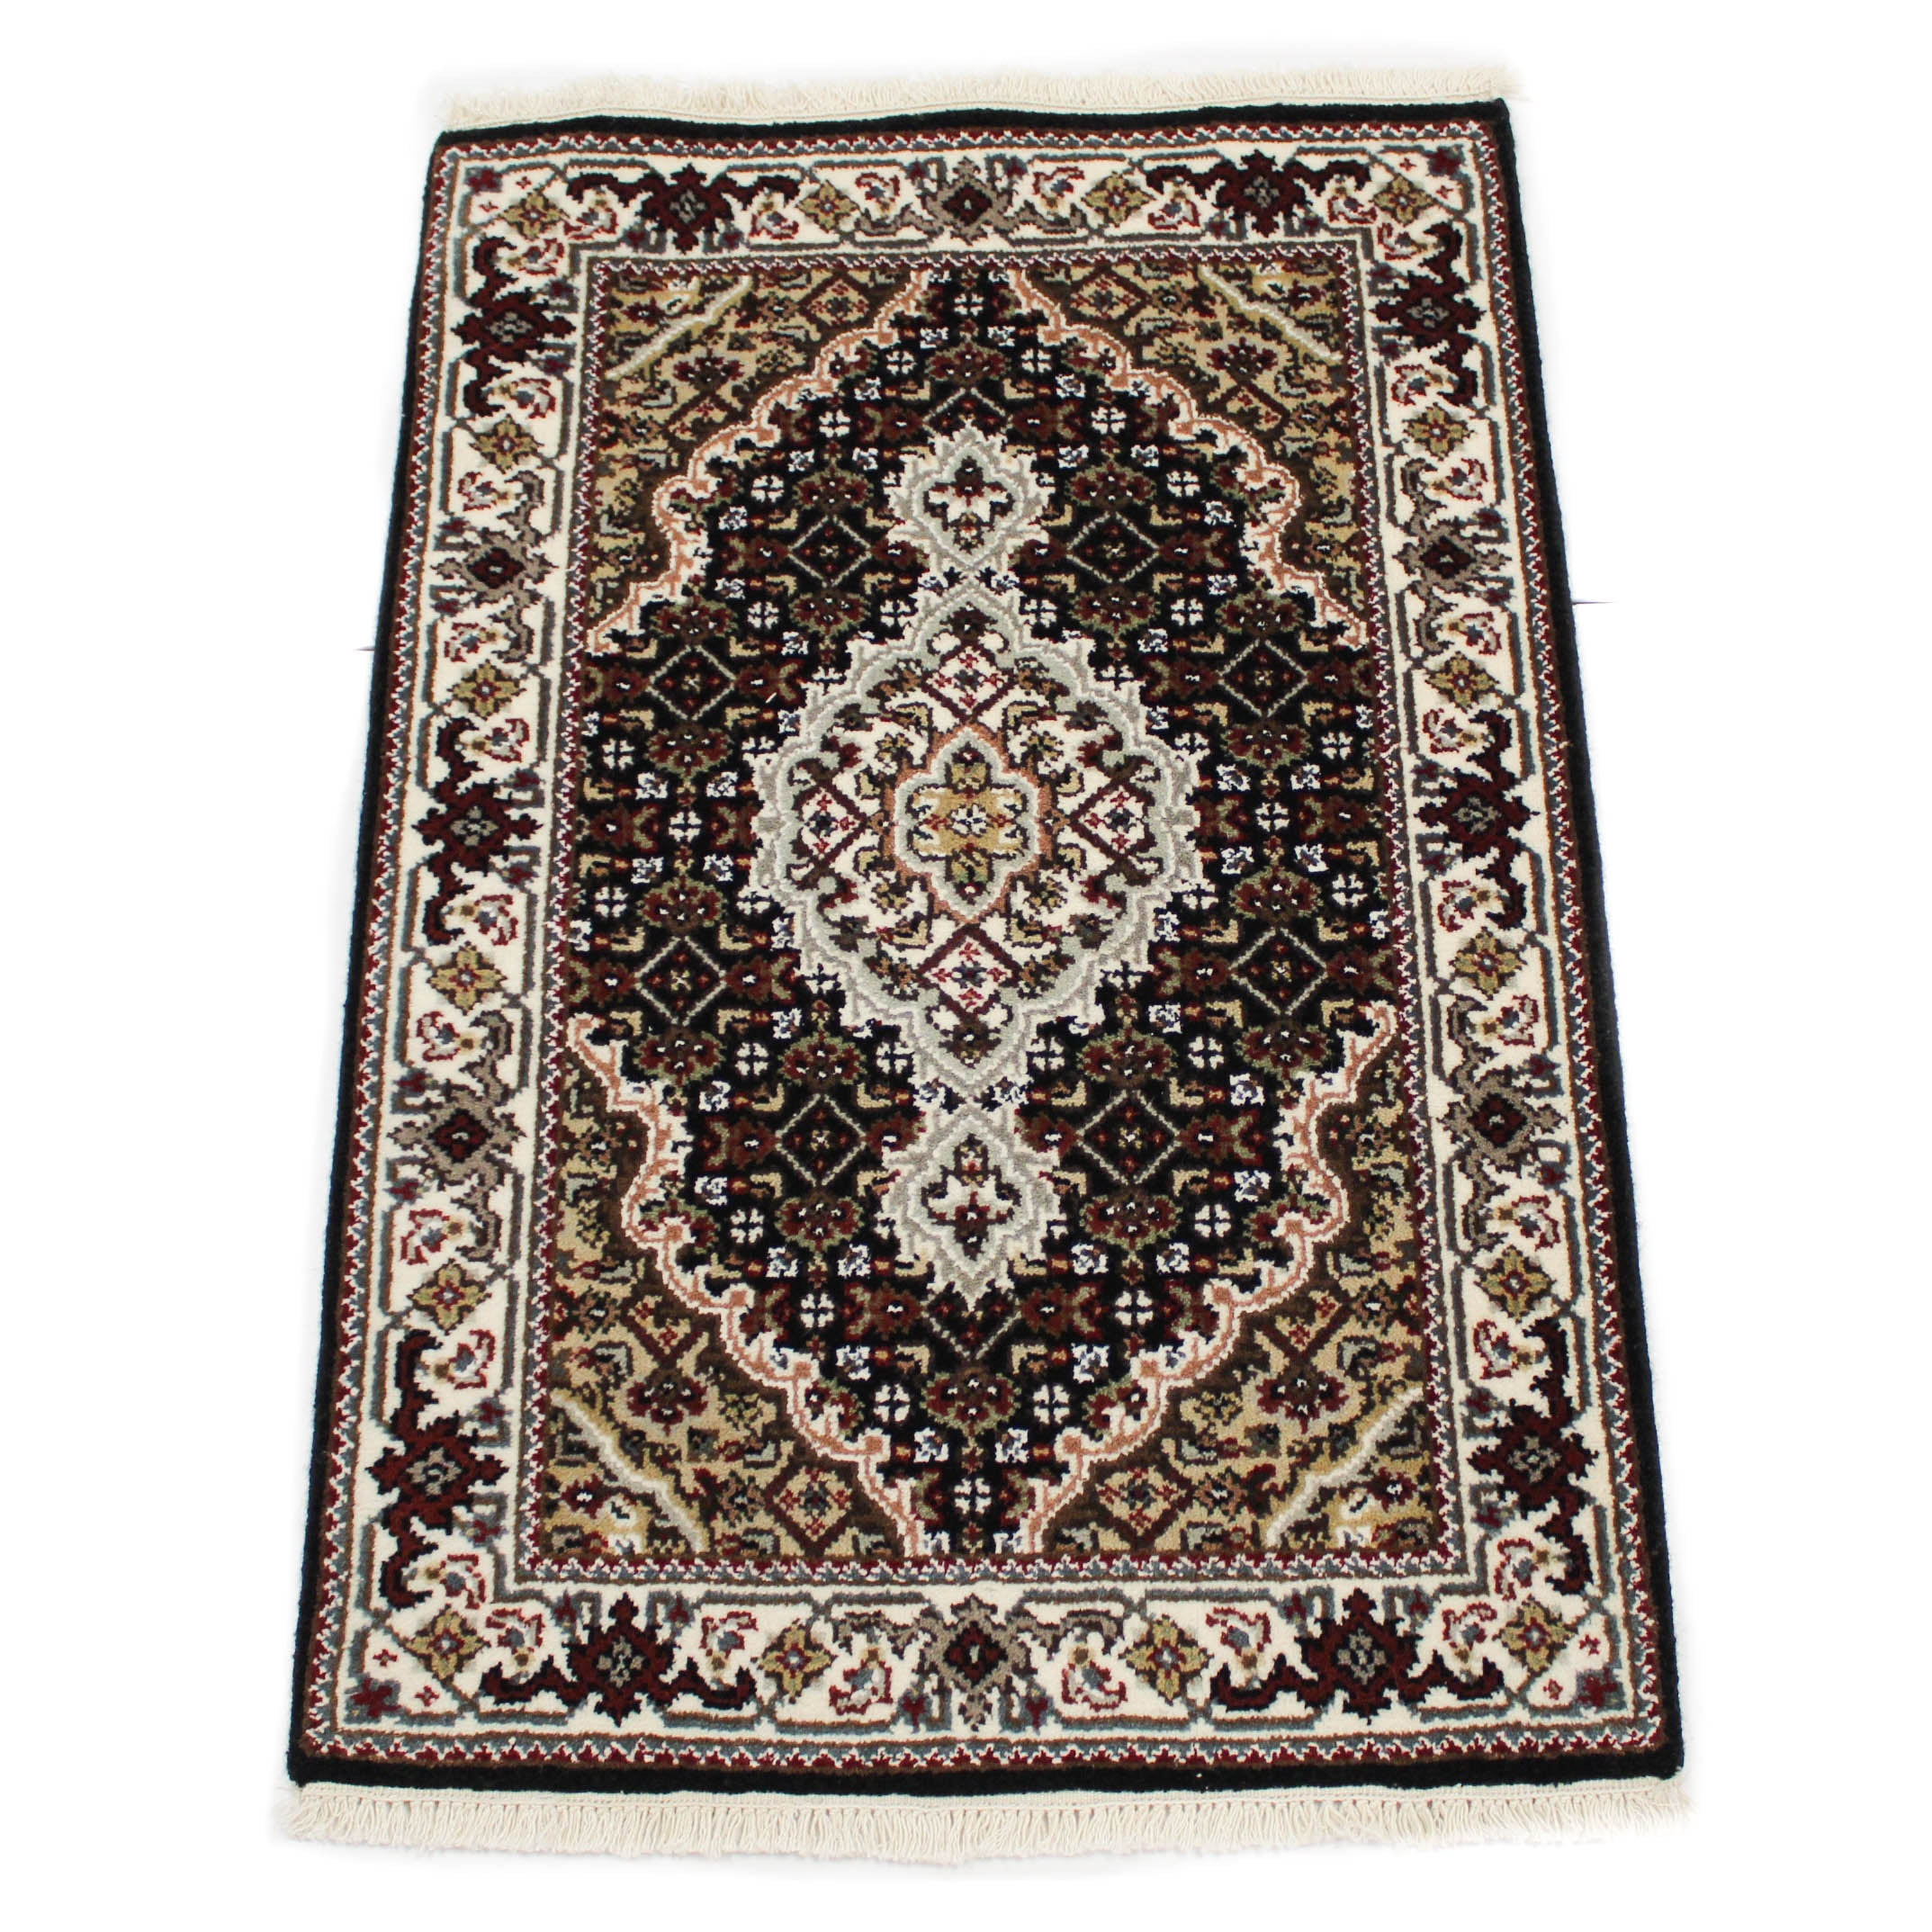 Fine Hand-Knotted Indo-Persian Tabriz Silk Blend Accent Rug